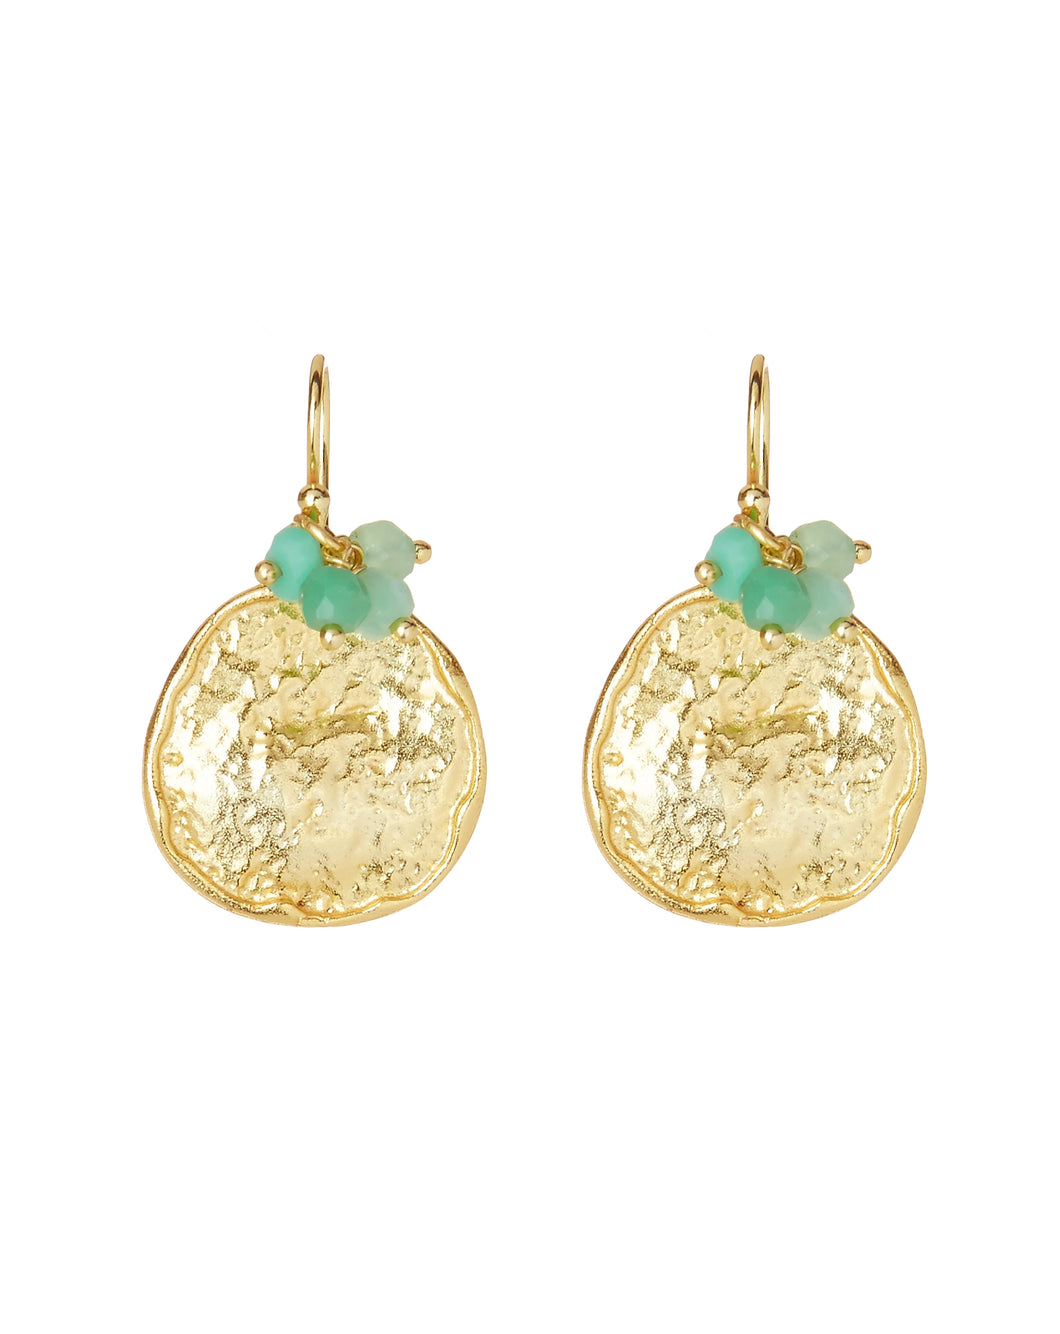 Solange Earrings in Aqua